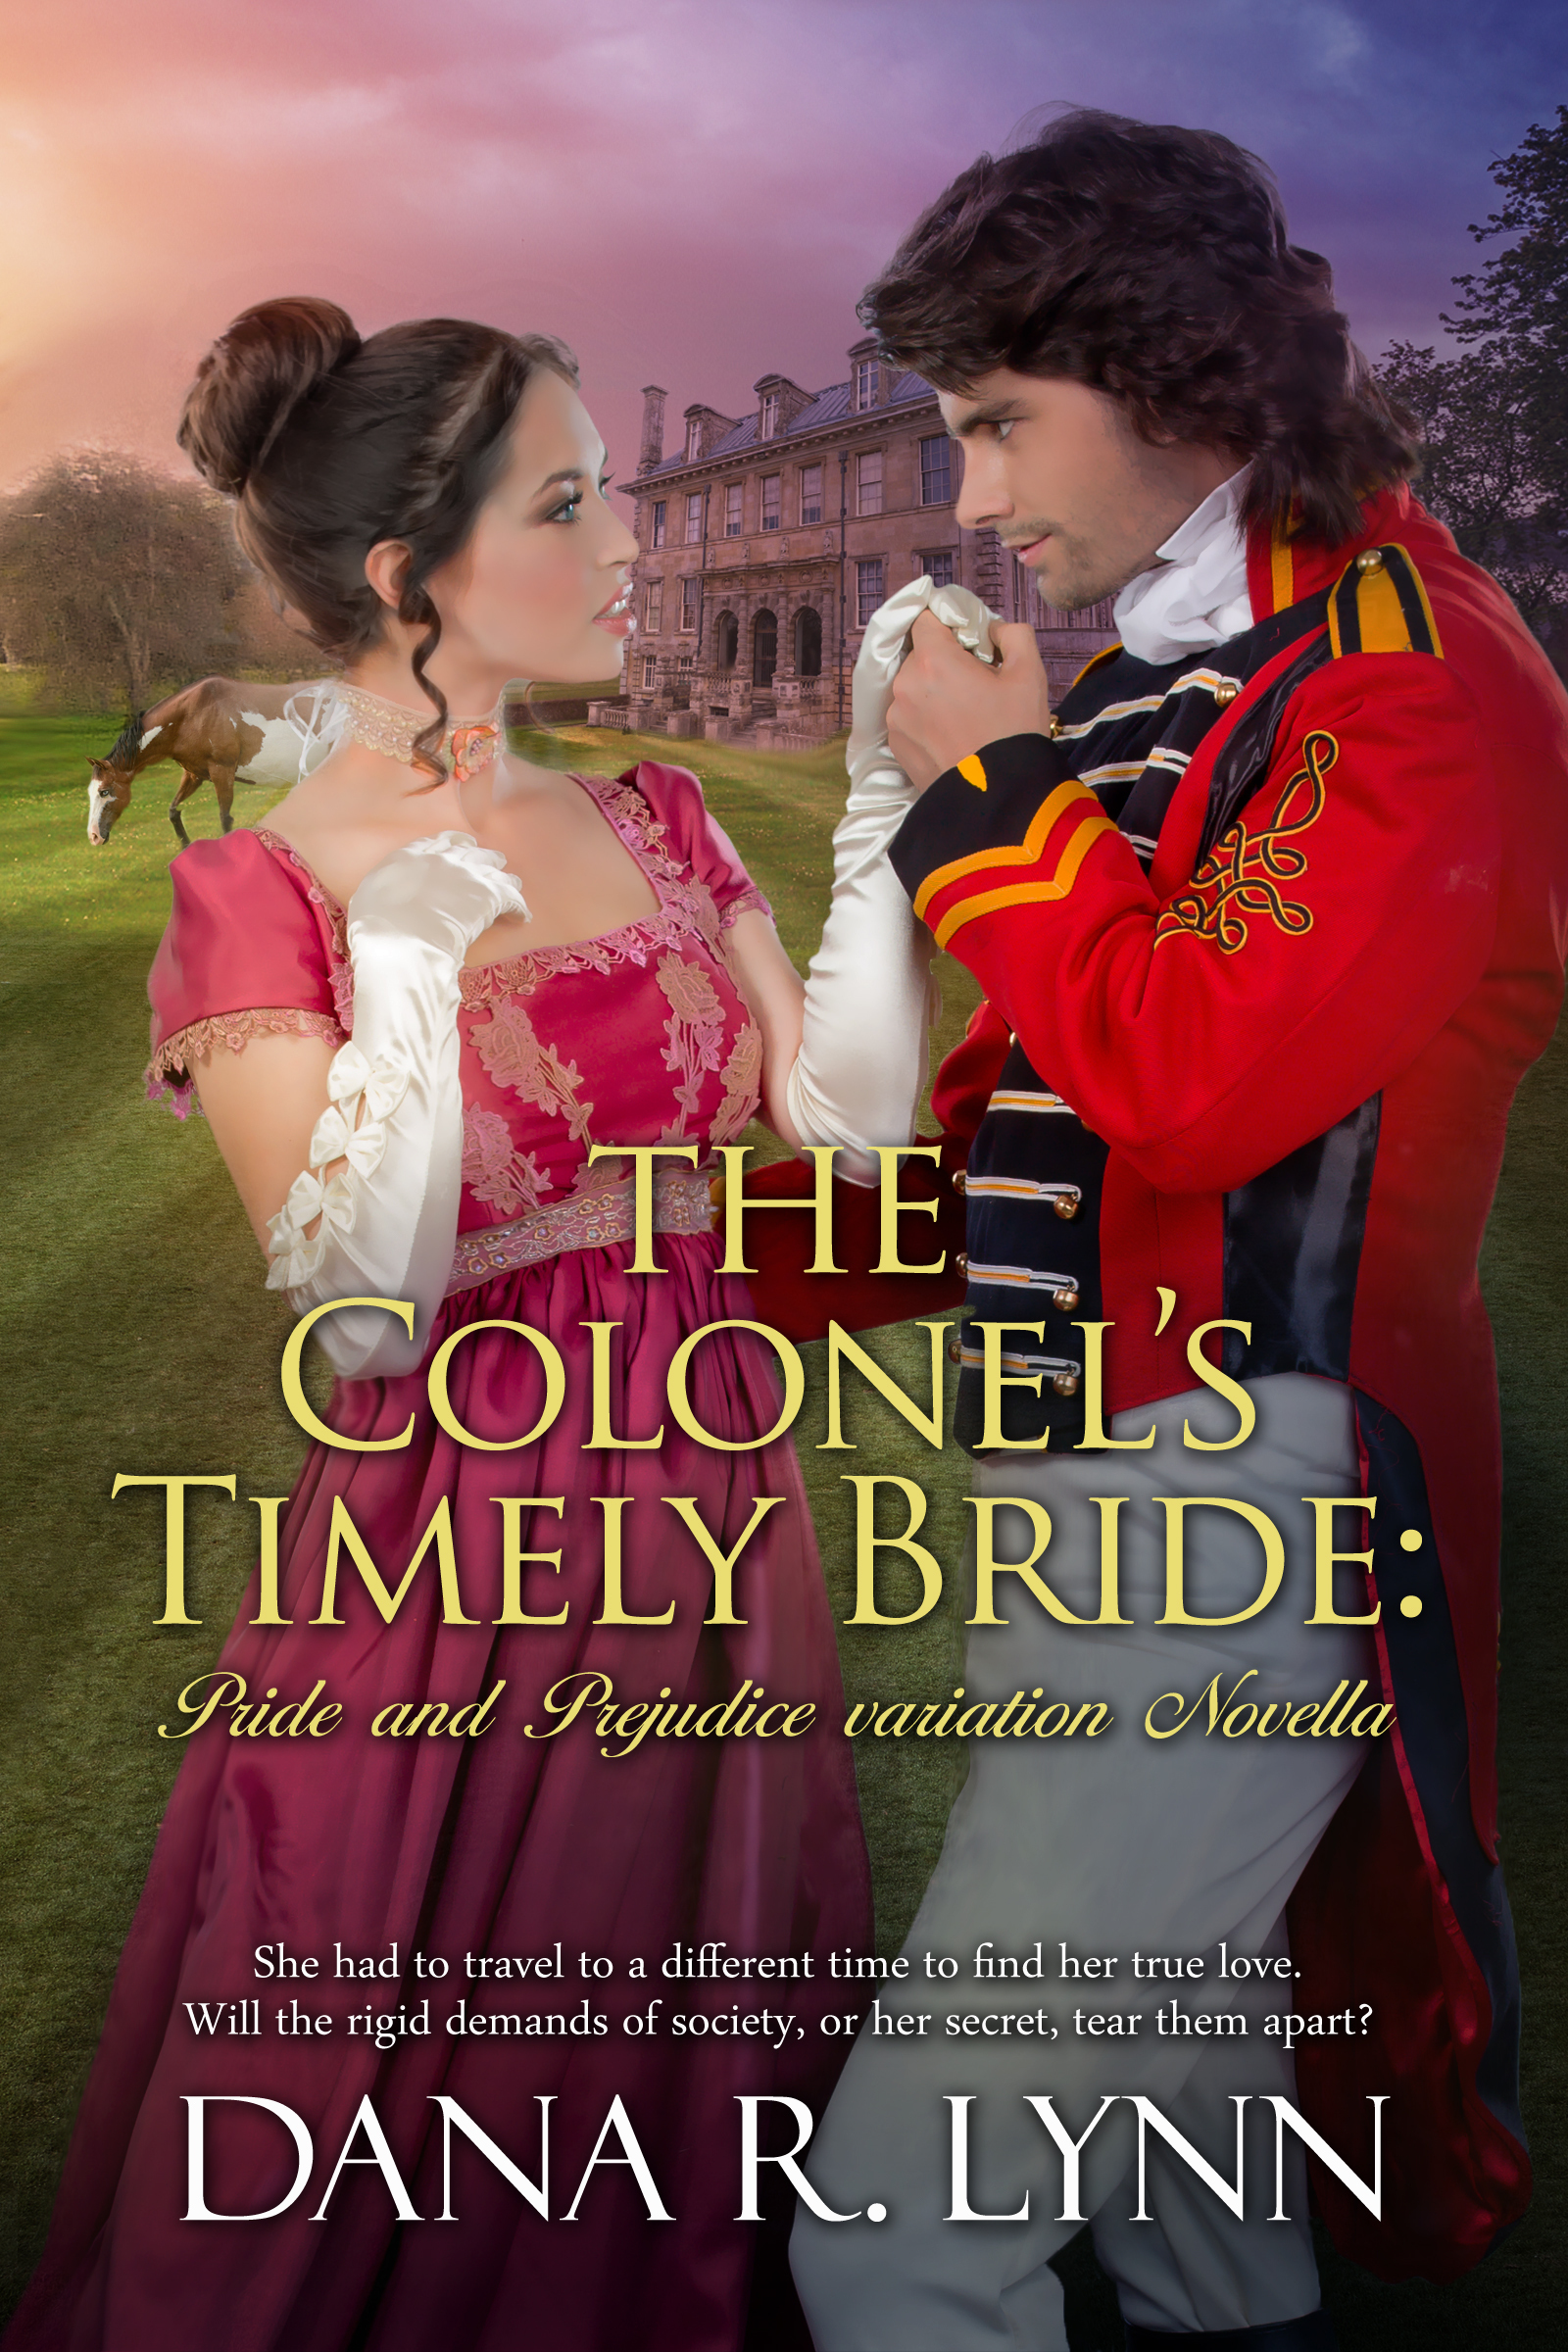 The Colonels Timely Bride  by  Dana R. Lynn